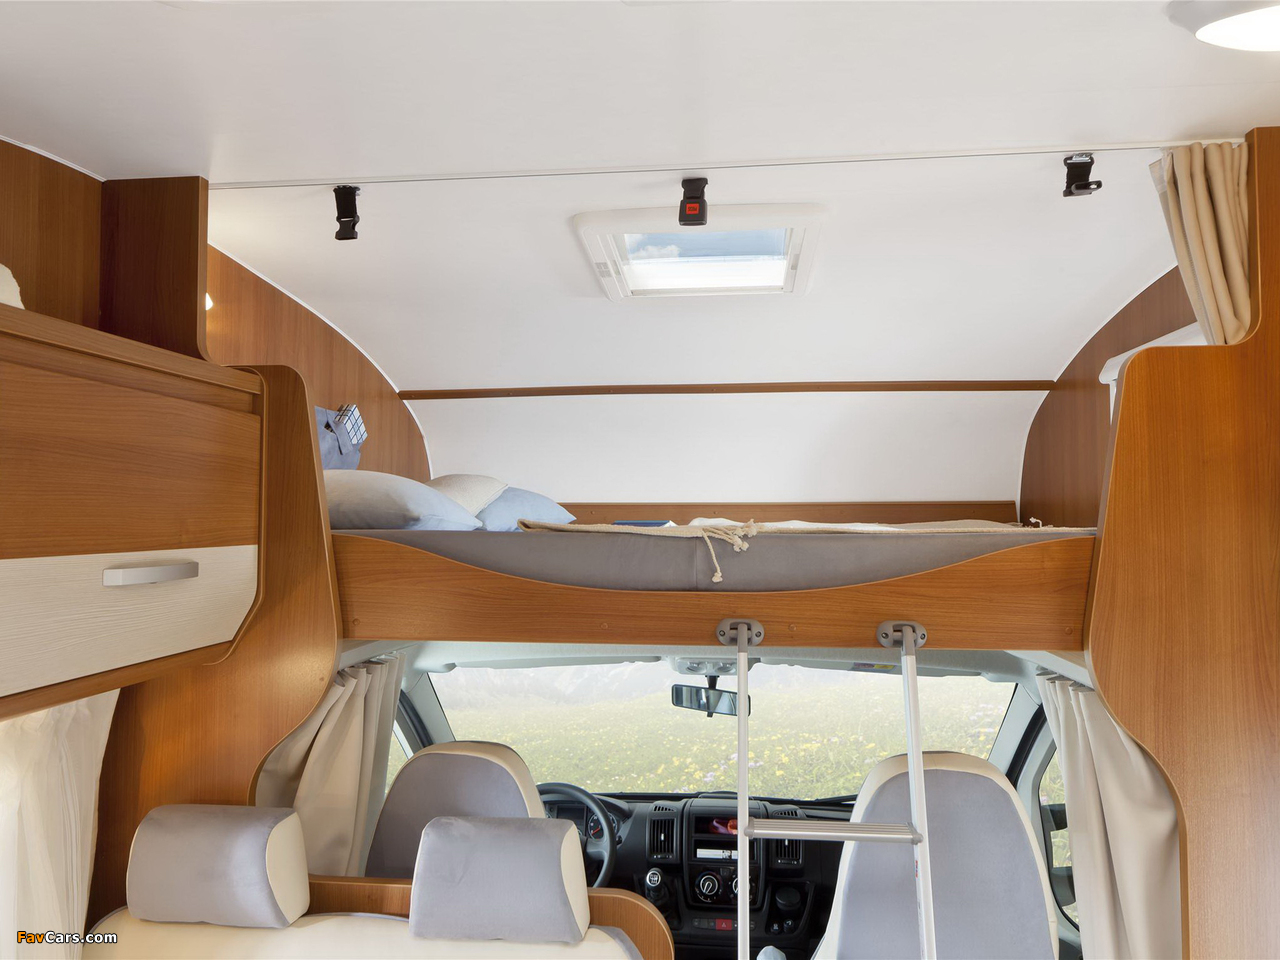 Carado A361 based on Fiat Ducato 2011 wallpapers (1280 x 960)